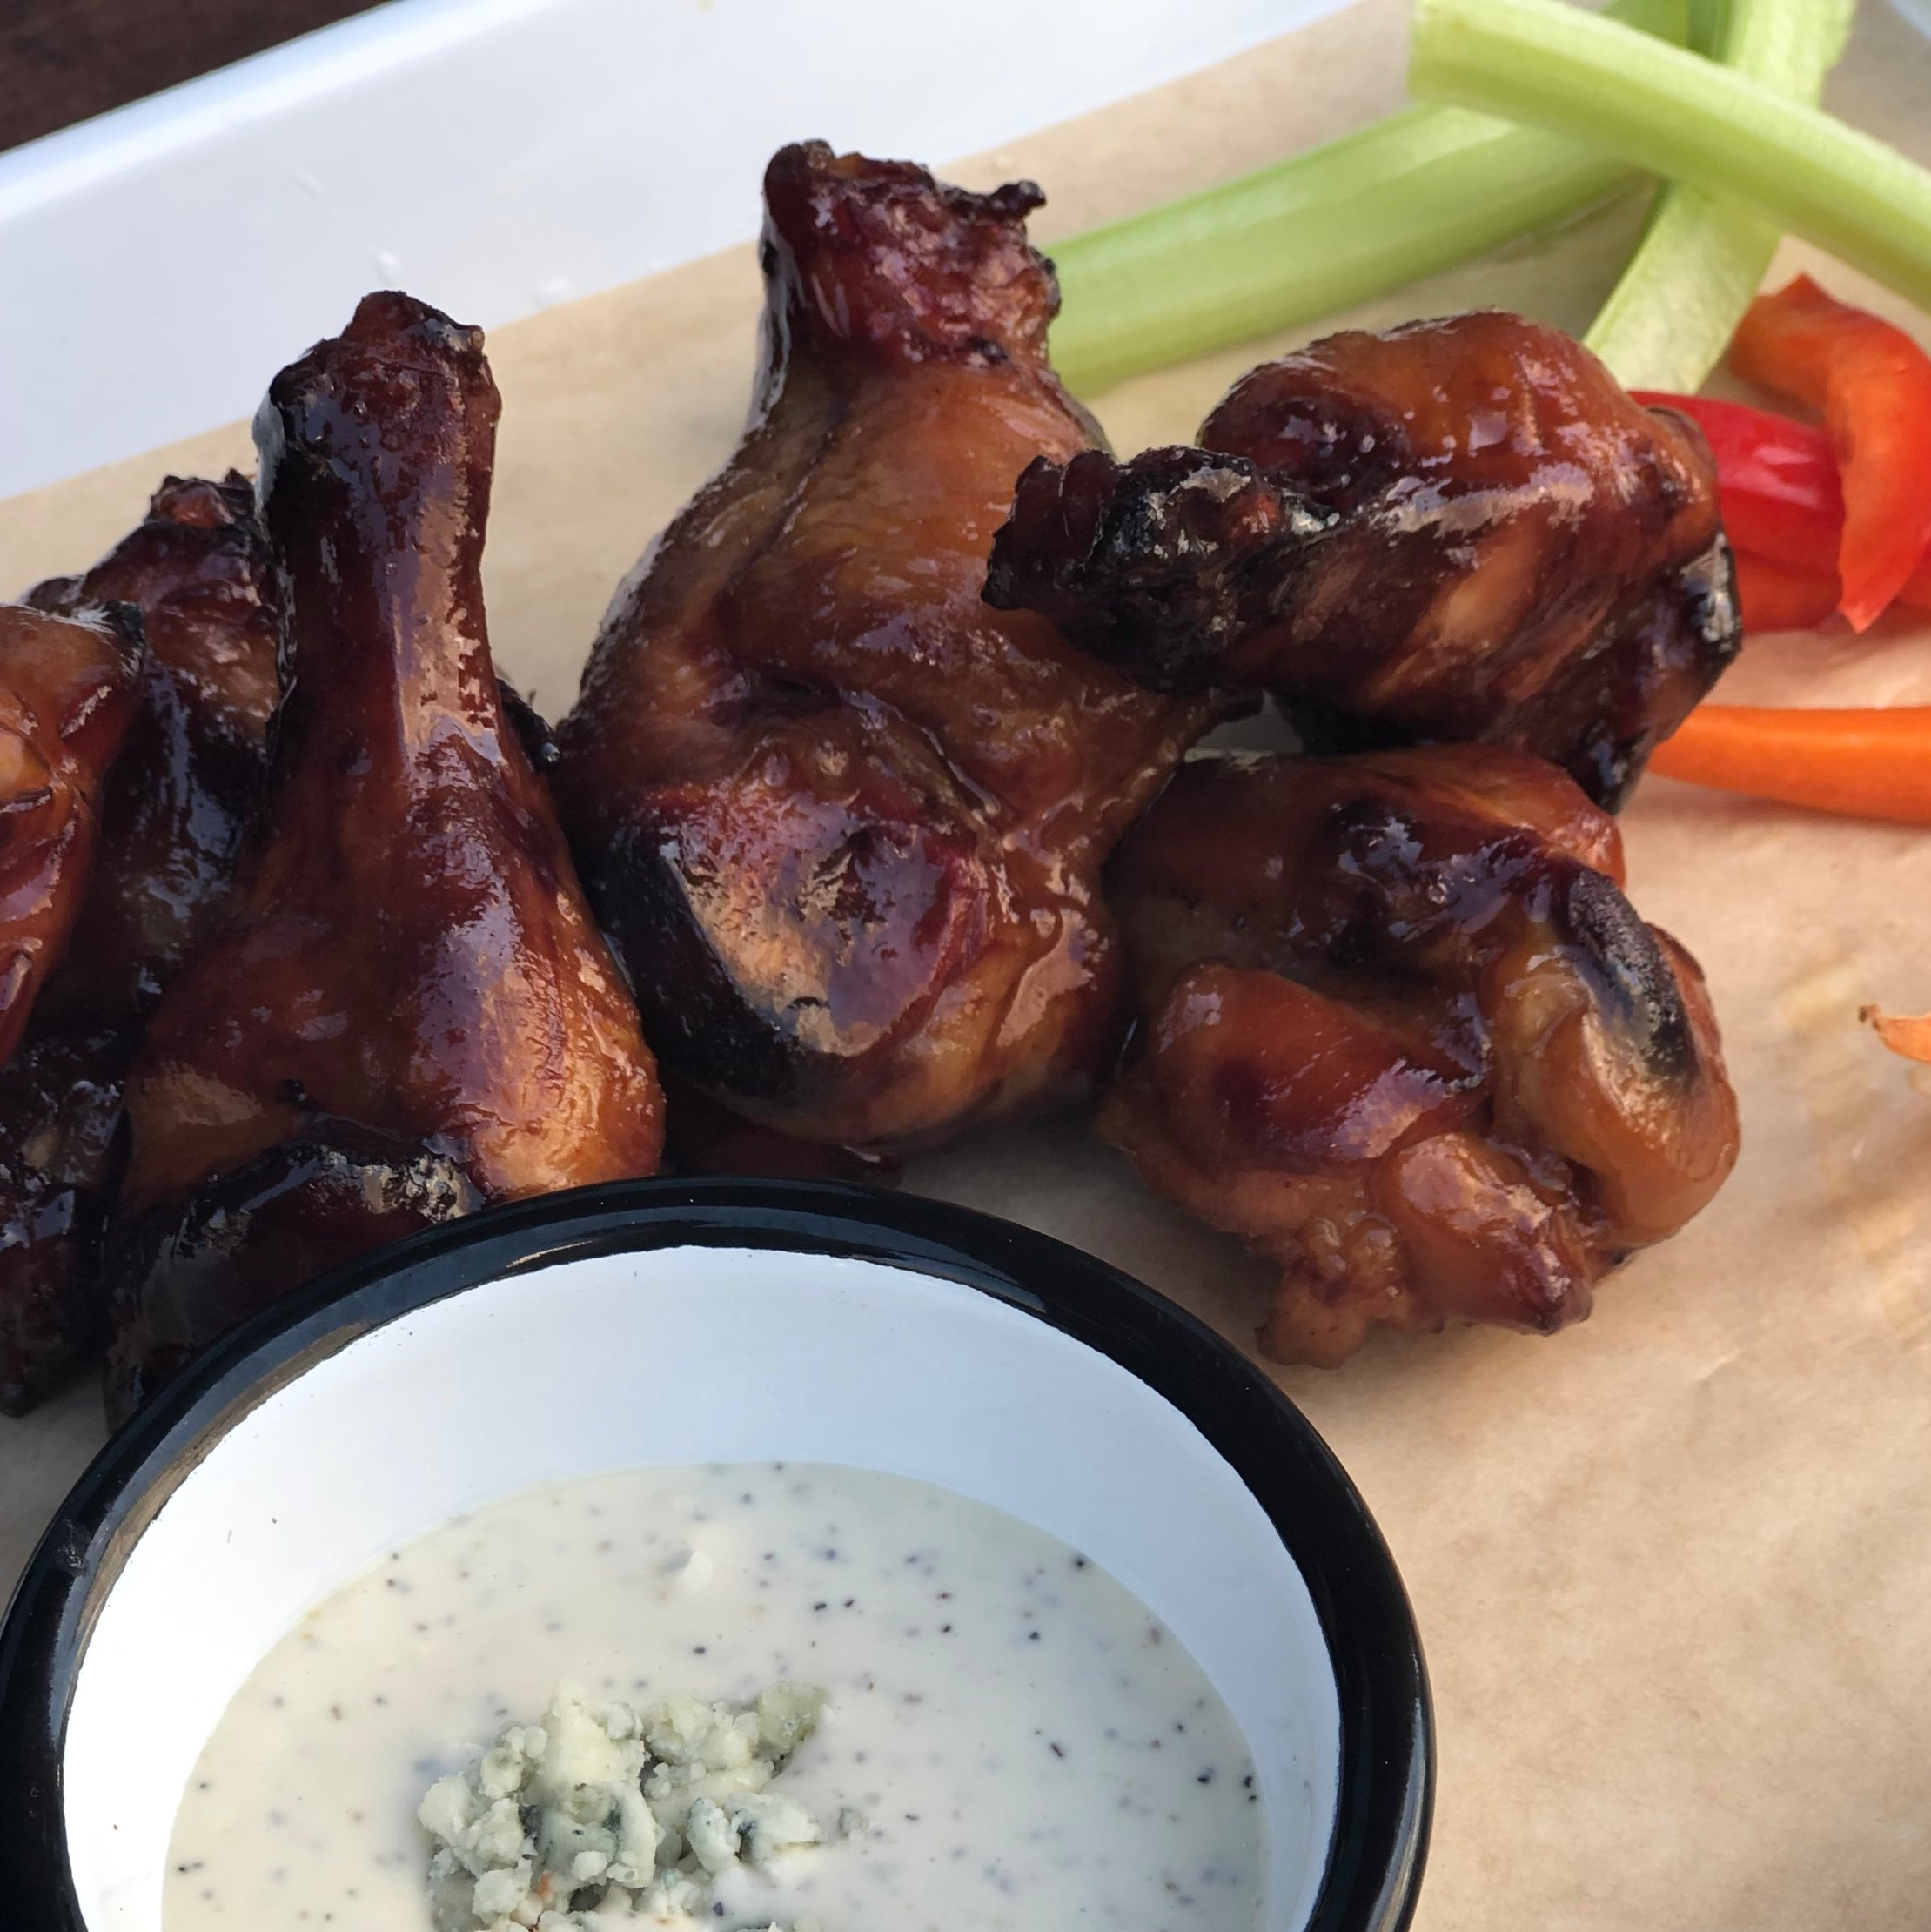 WINGS? YOU BET. - Salad + Pizza? We have that too. Our menu is hand picked to satisfy any craving.